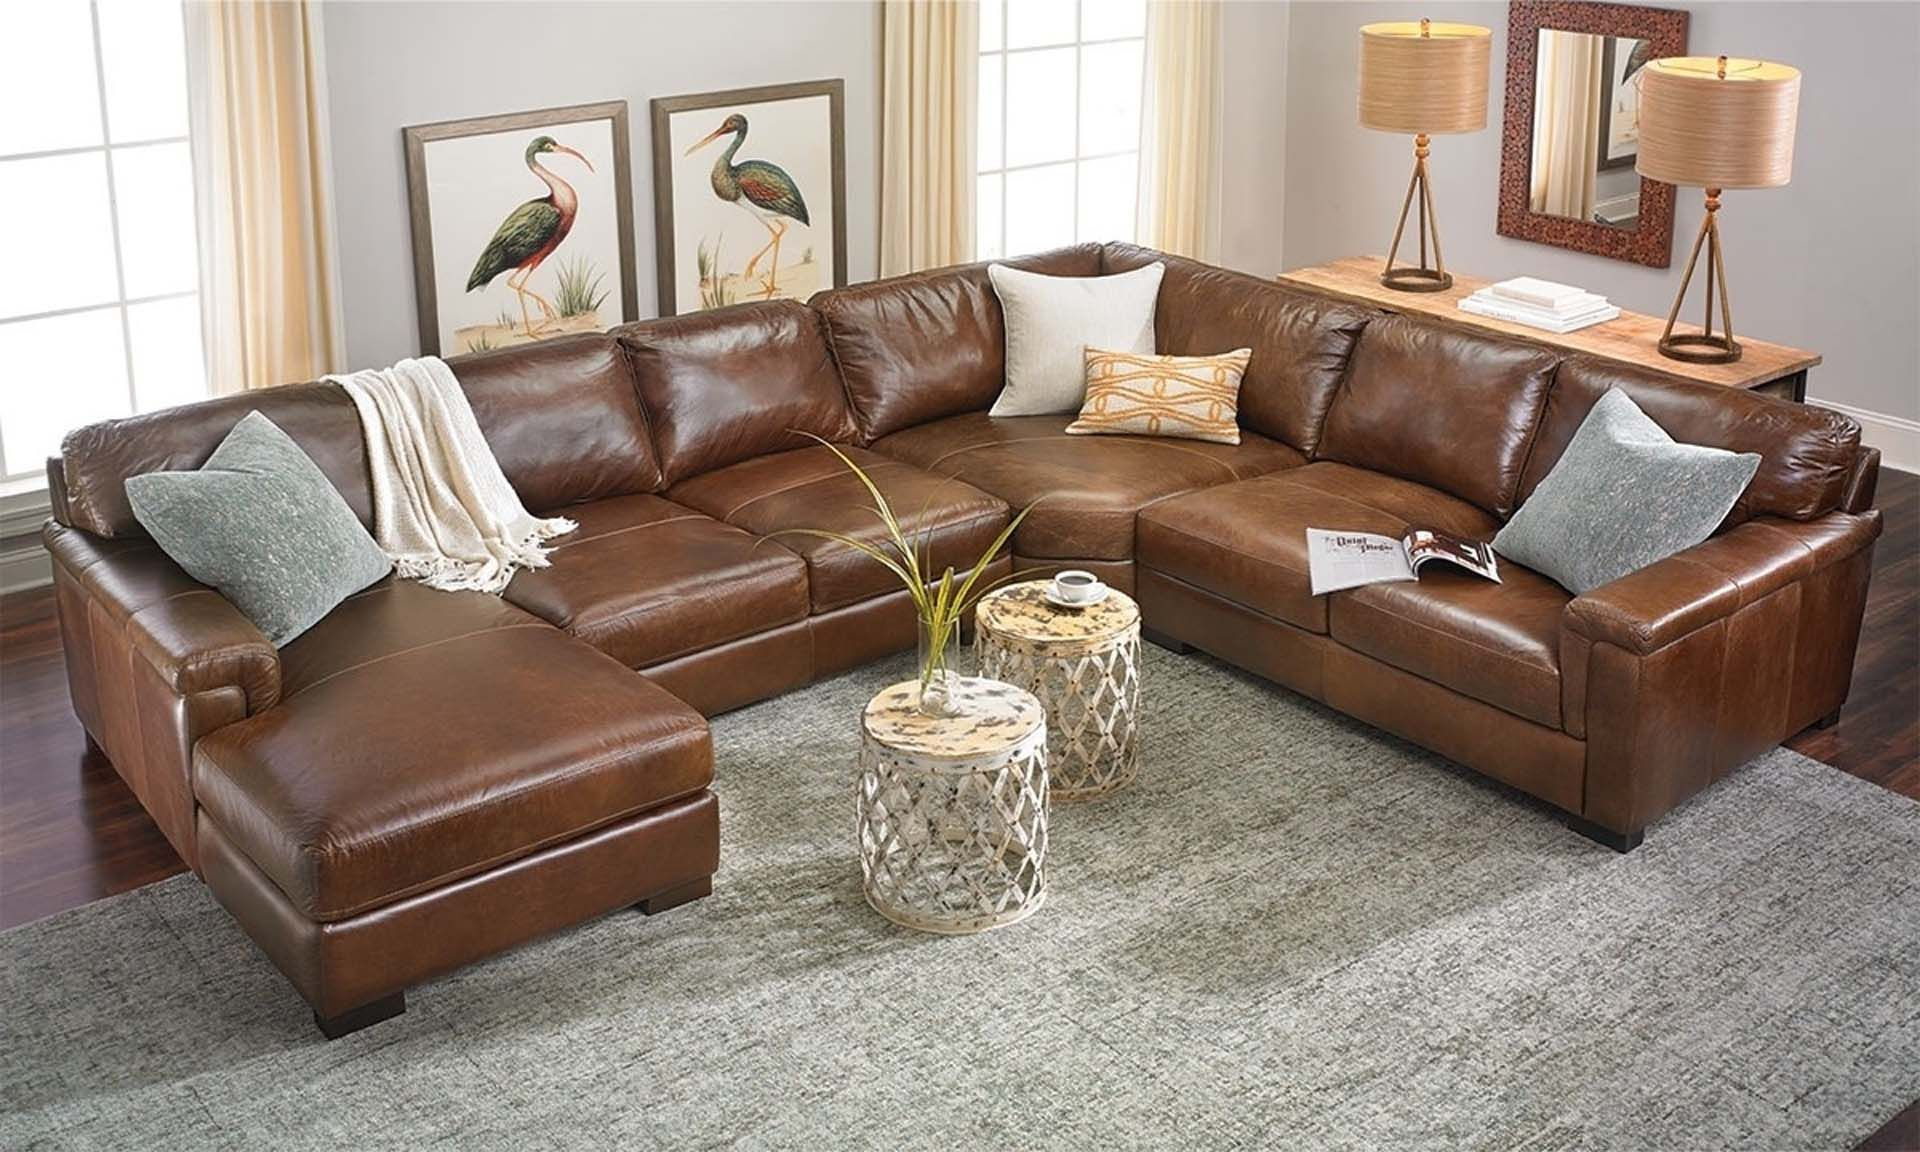 Top Grain Italian Leather Sectional With Left Side Chaise In 2020 Leather Couches Living Room Living Room Leather Leather Sectional Living Room #the #dump #living #room #furniture